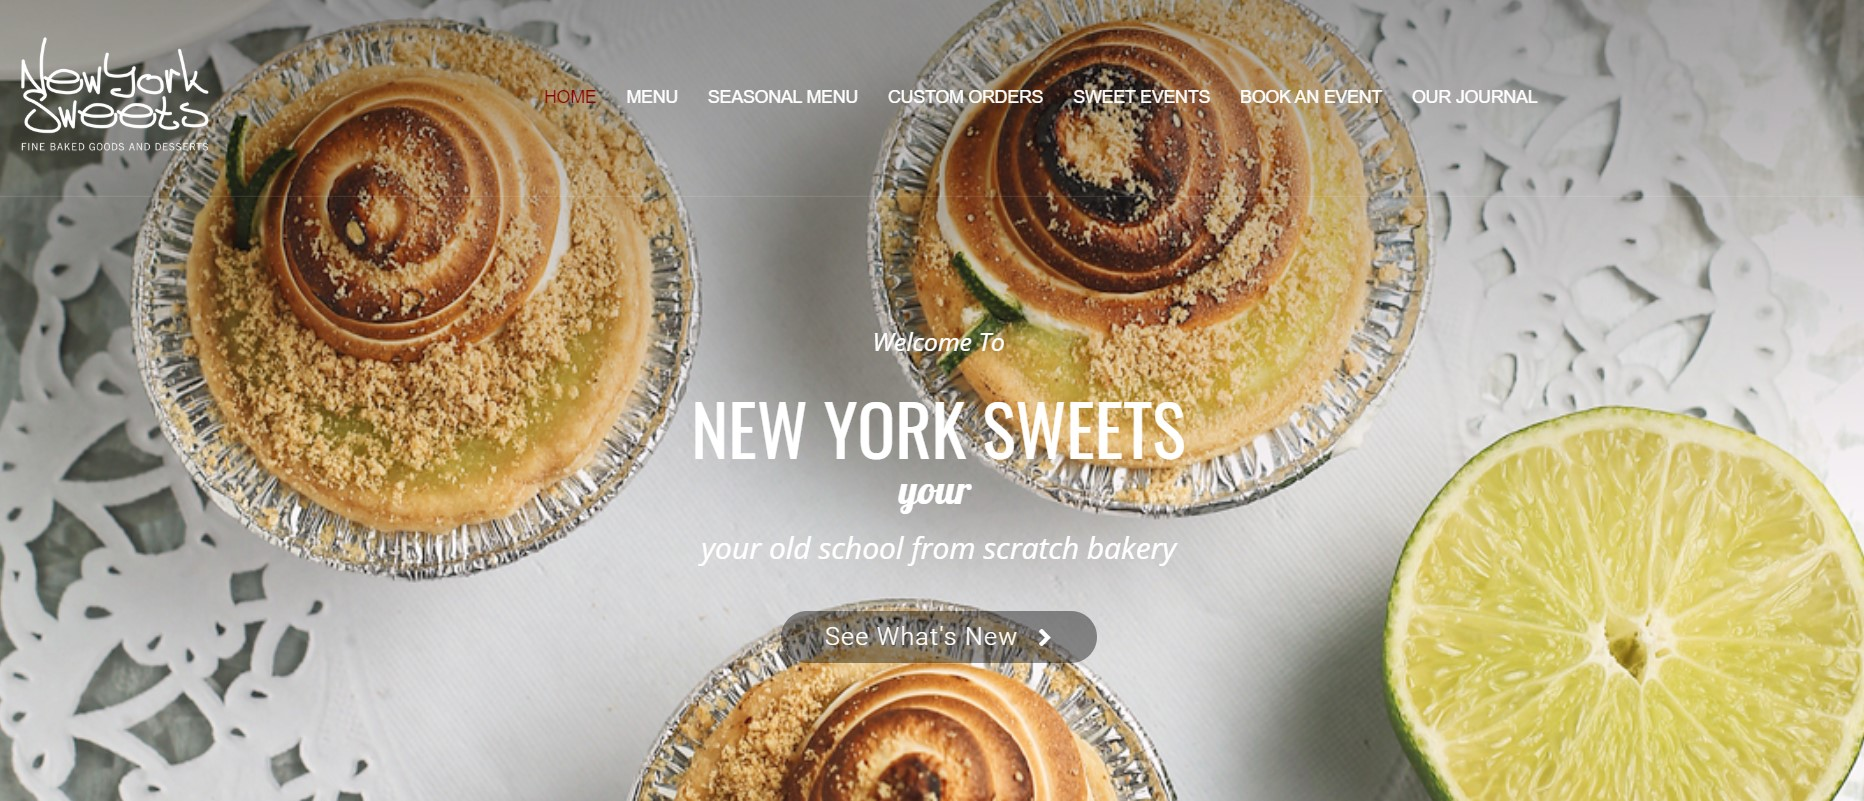 new york sweets bakery in new york